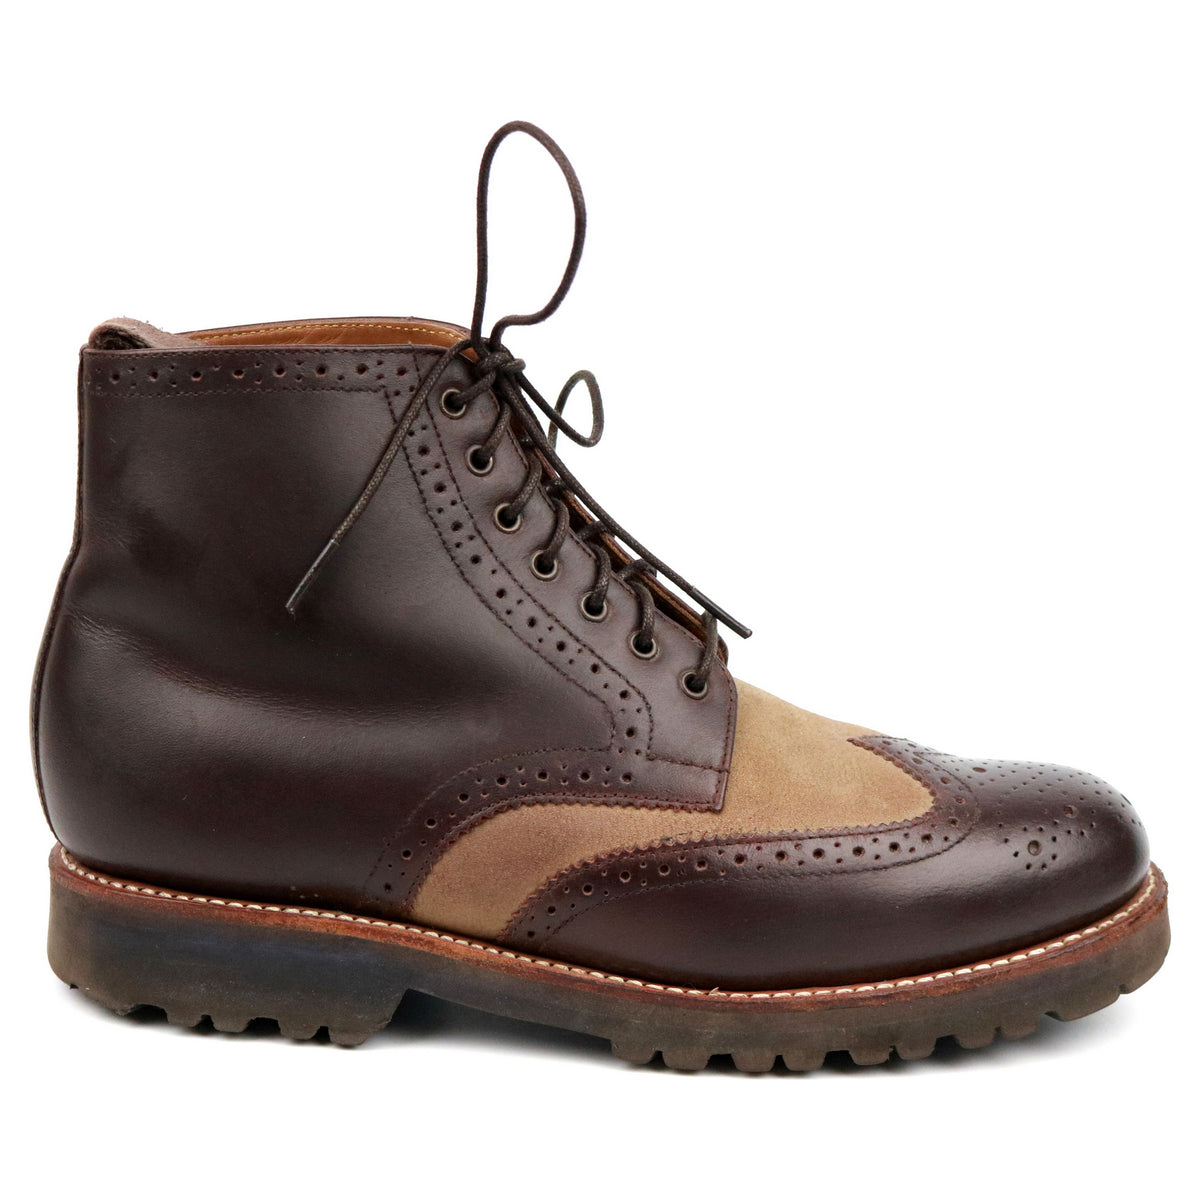 Grenson 'Sharp' Brown Two Tone Leather Brogue Boots UK 6 G